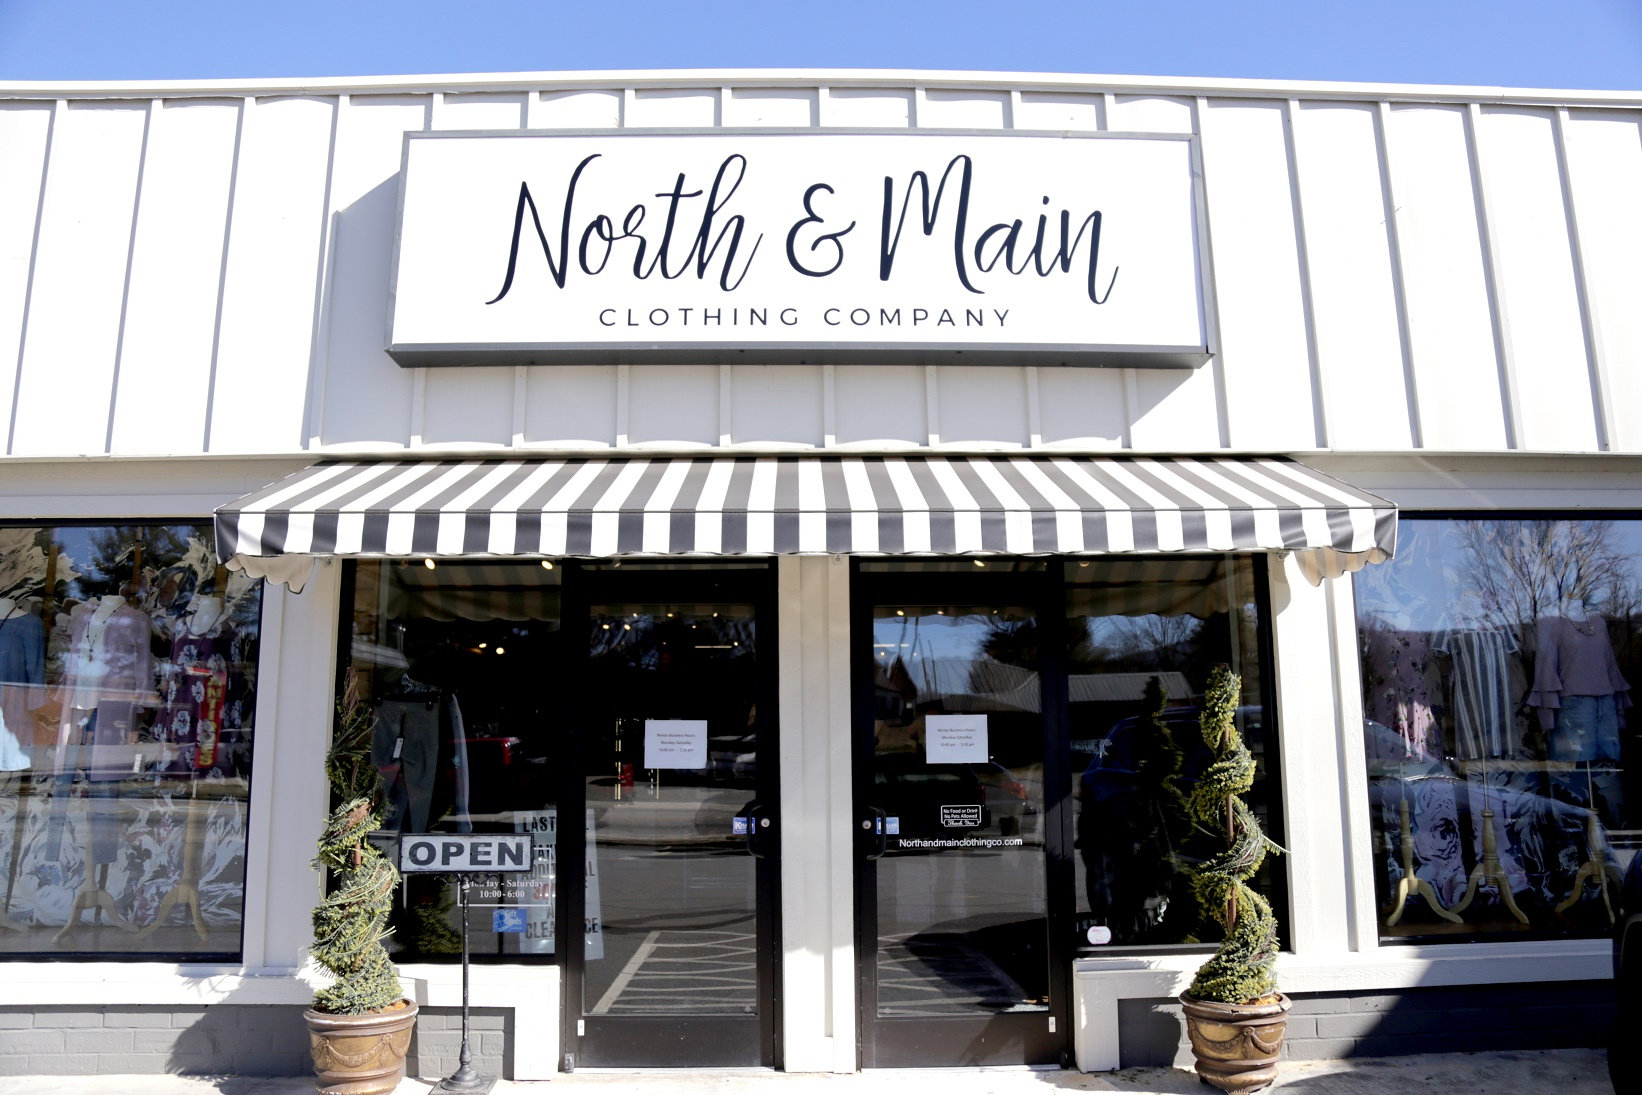 North and main clothing